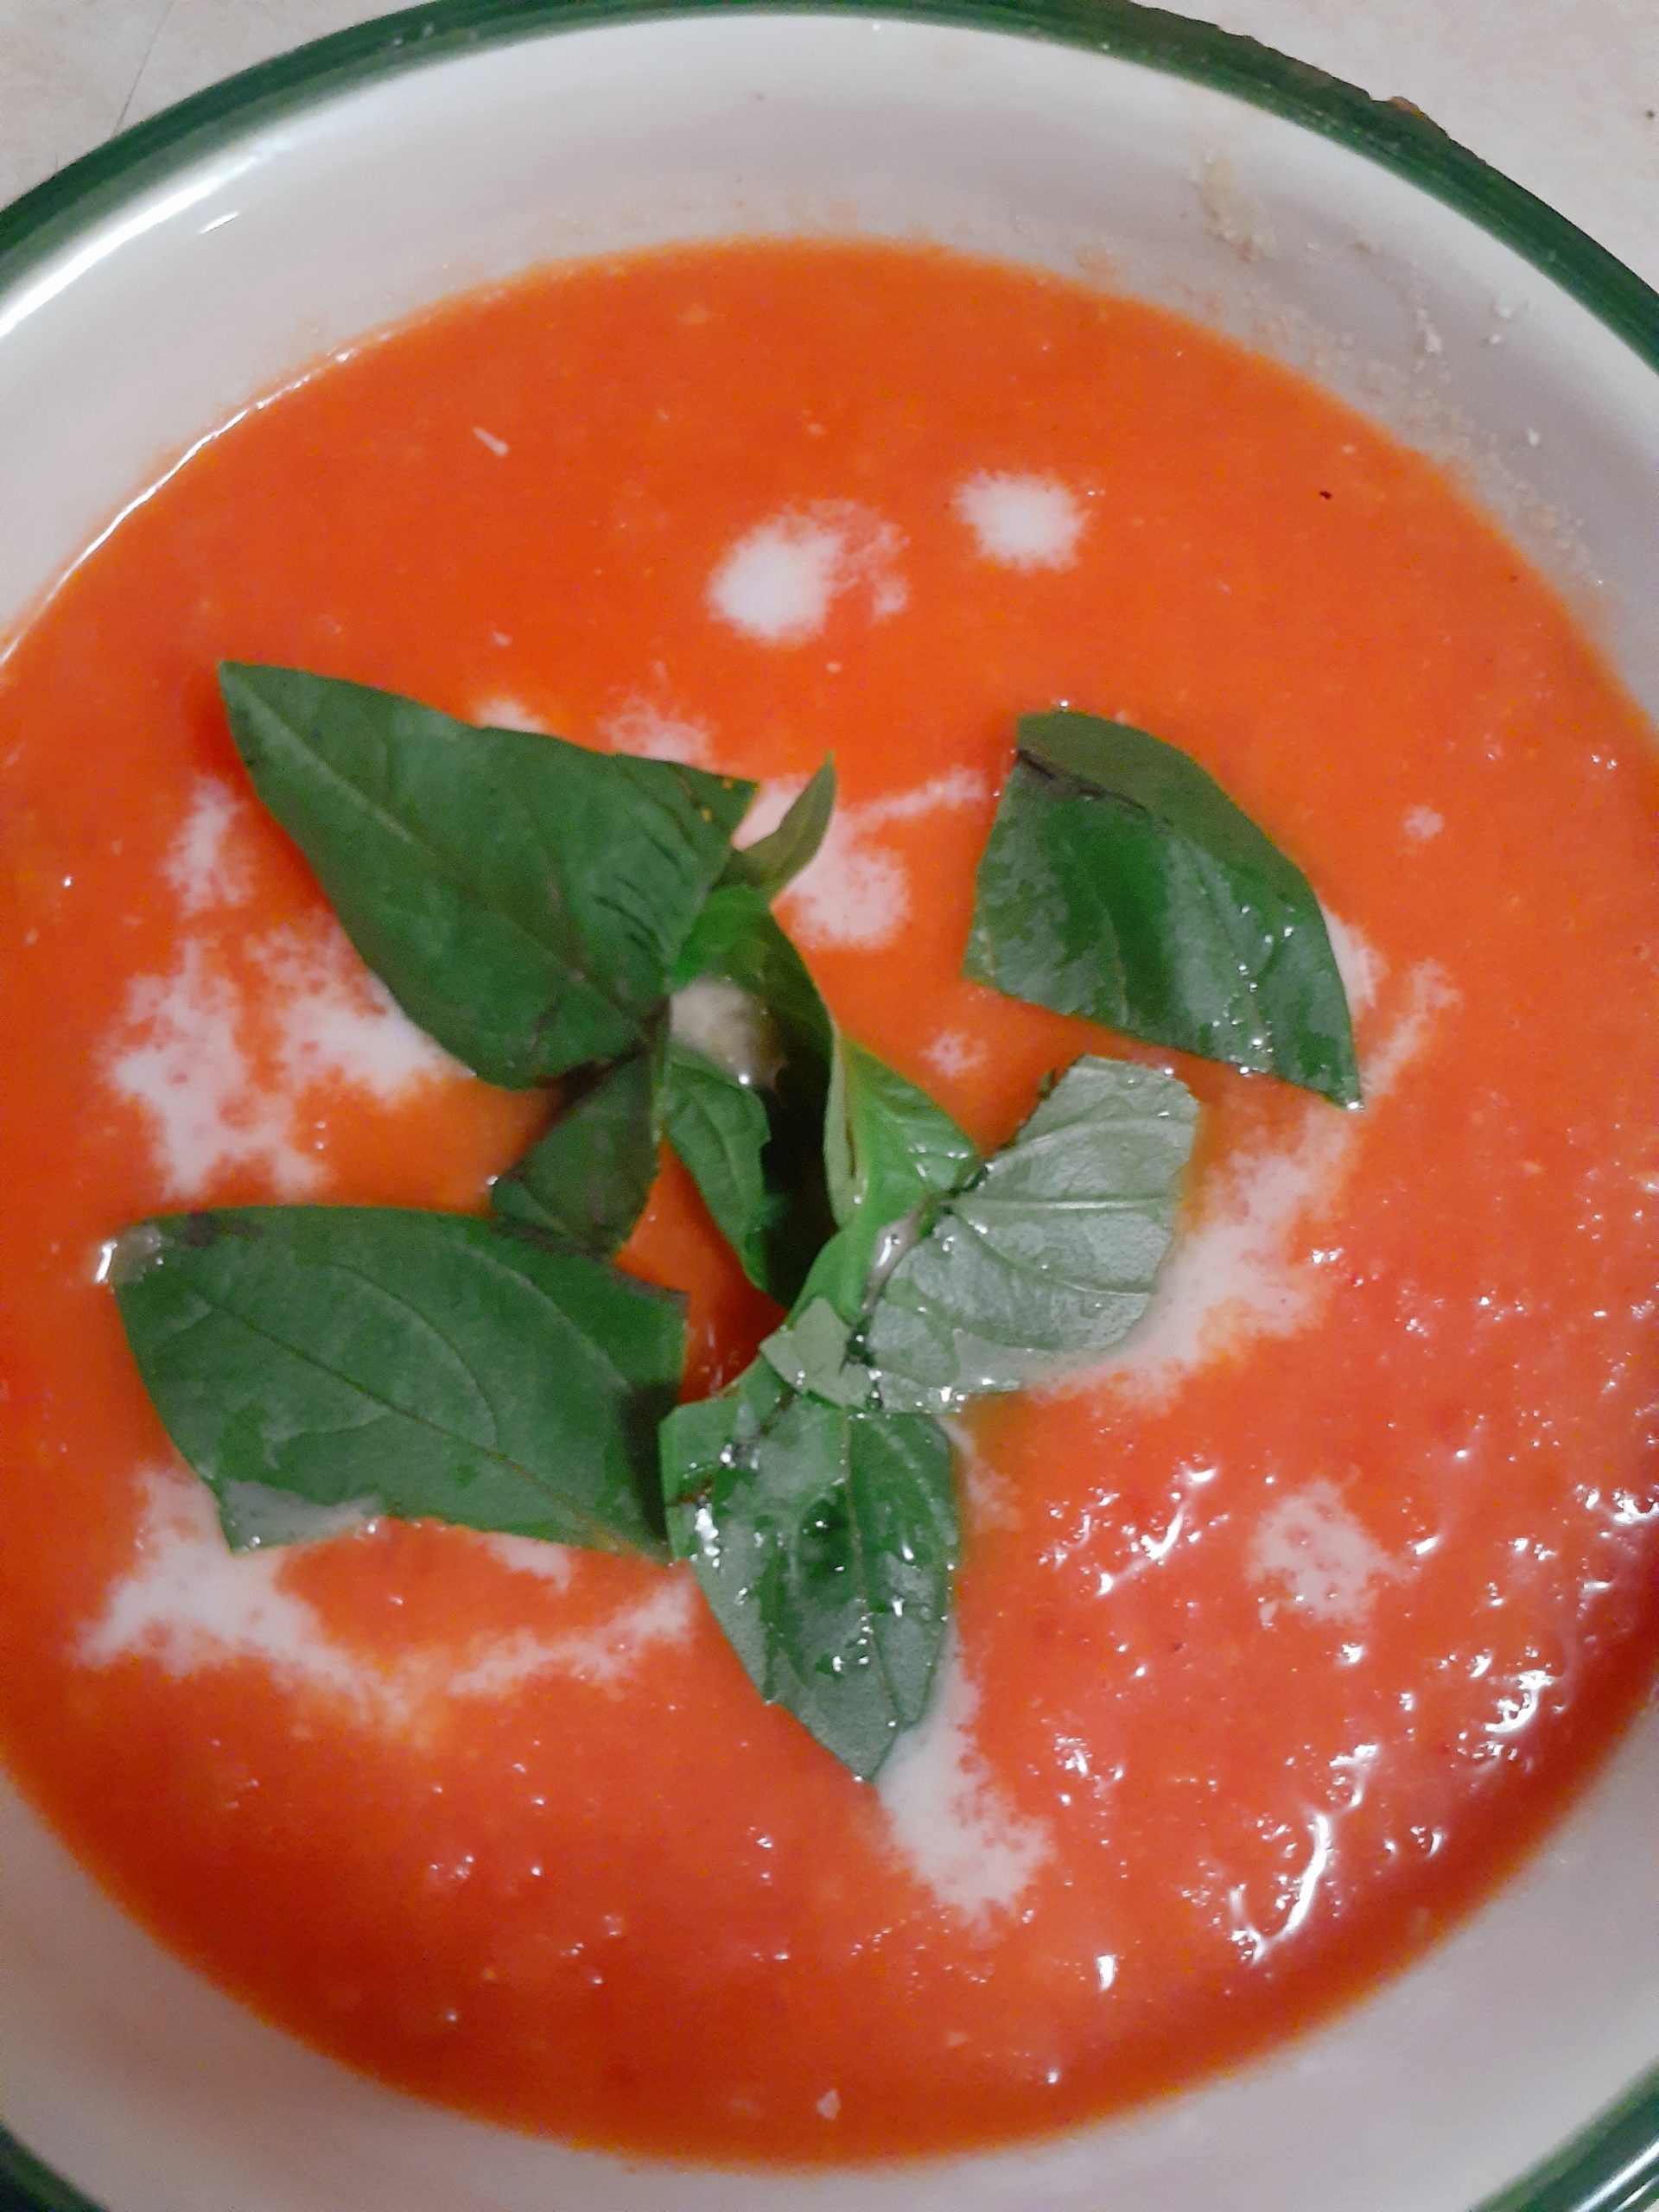 Still Chilly Where You Live? Try Our Vegan, Gluten-Free Cream of Tomato Soup